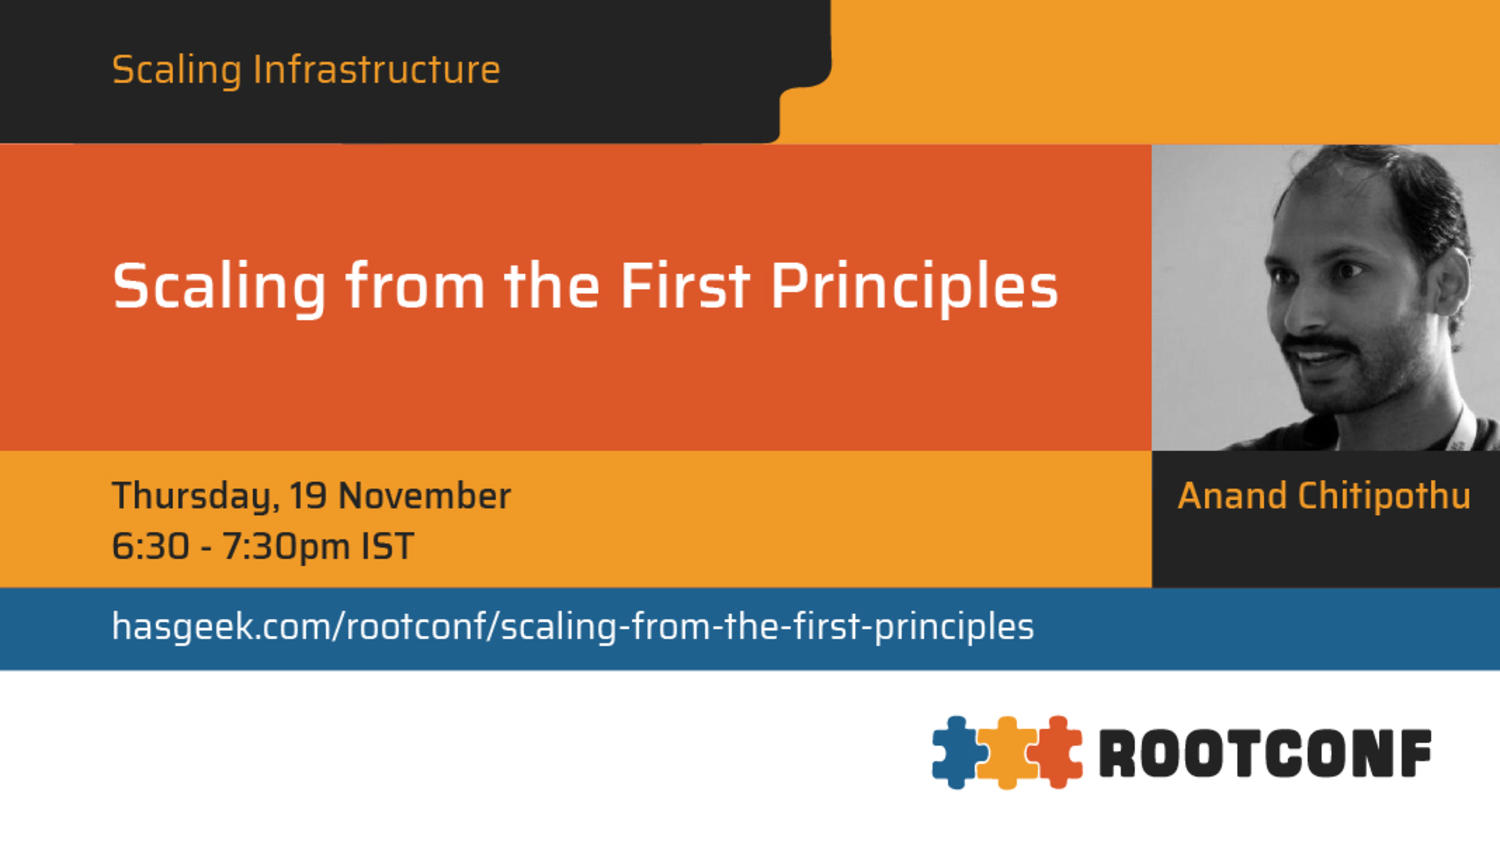 Scaling from the First Principles